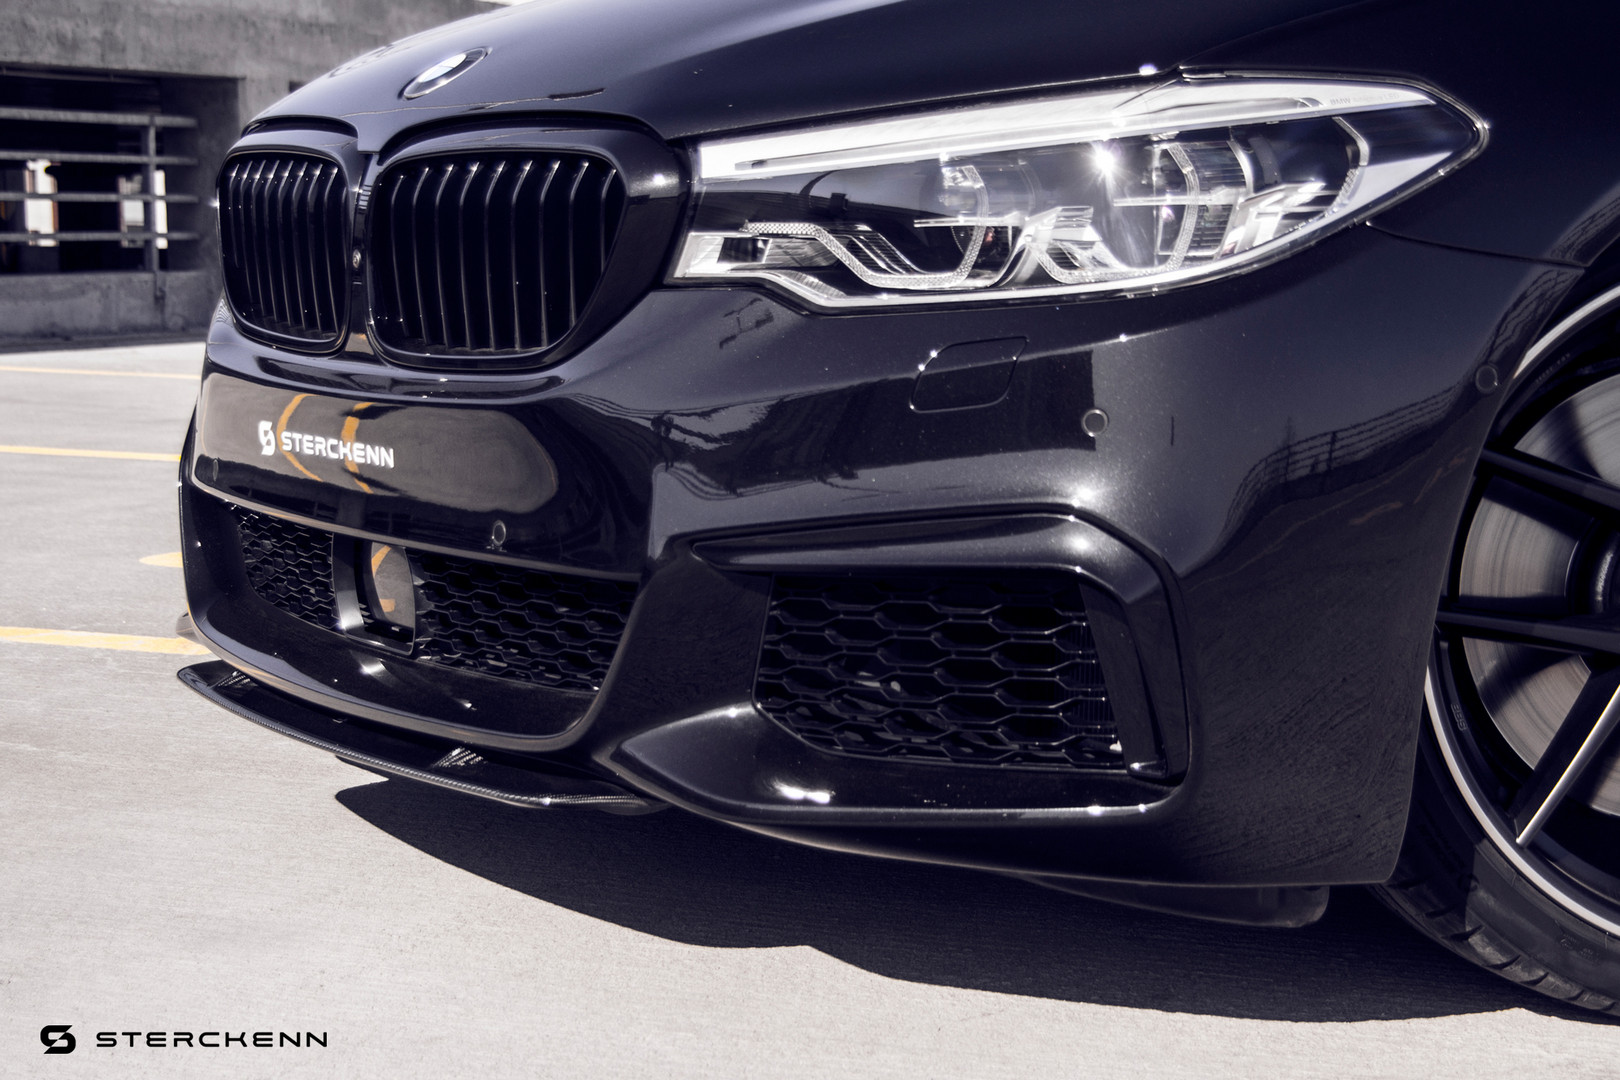 BMW G30 5 Series Headlights